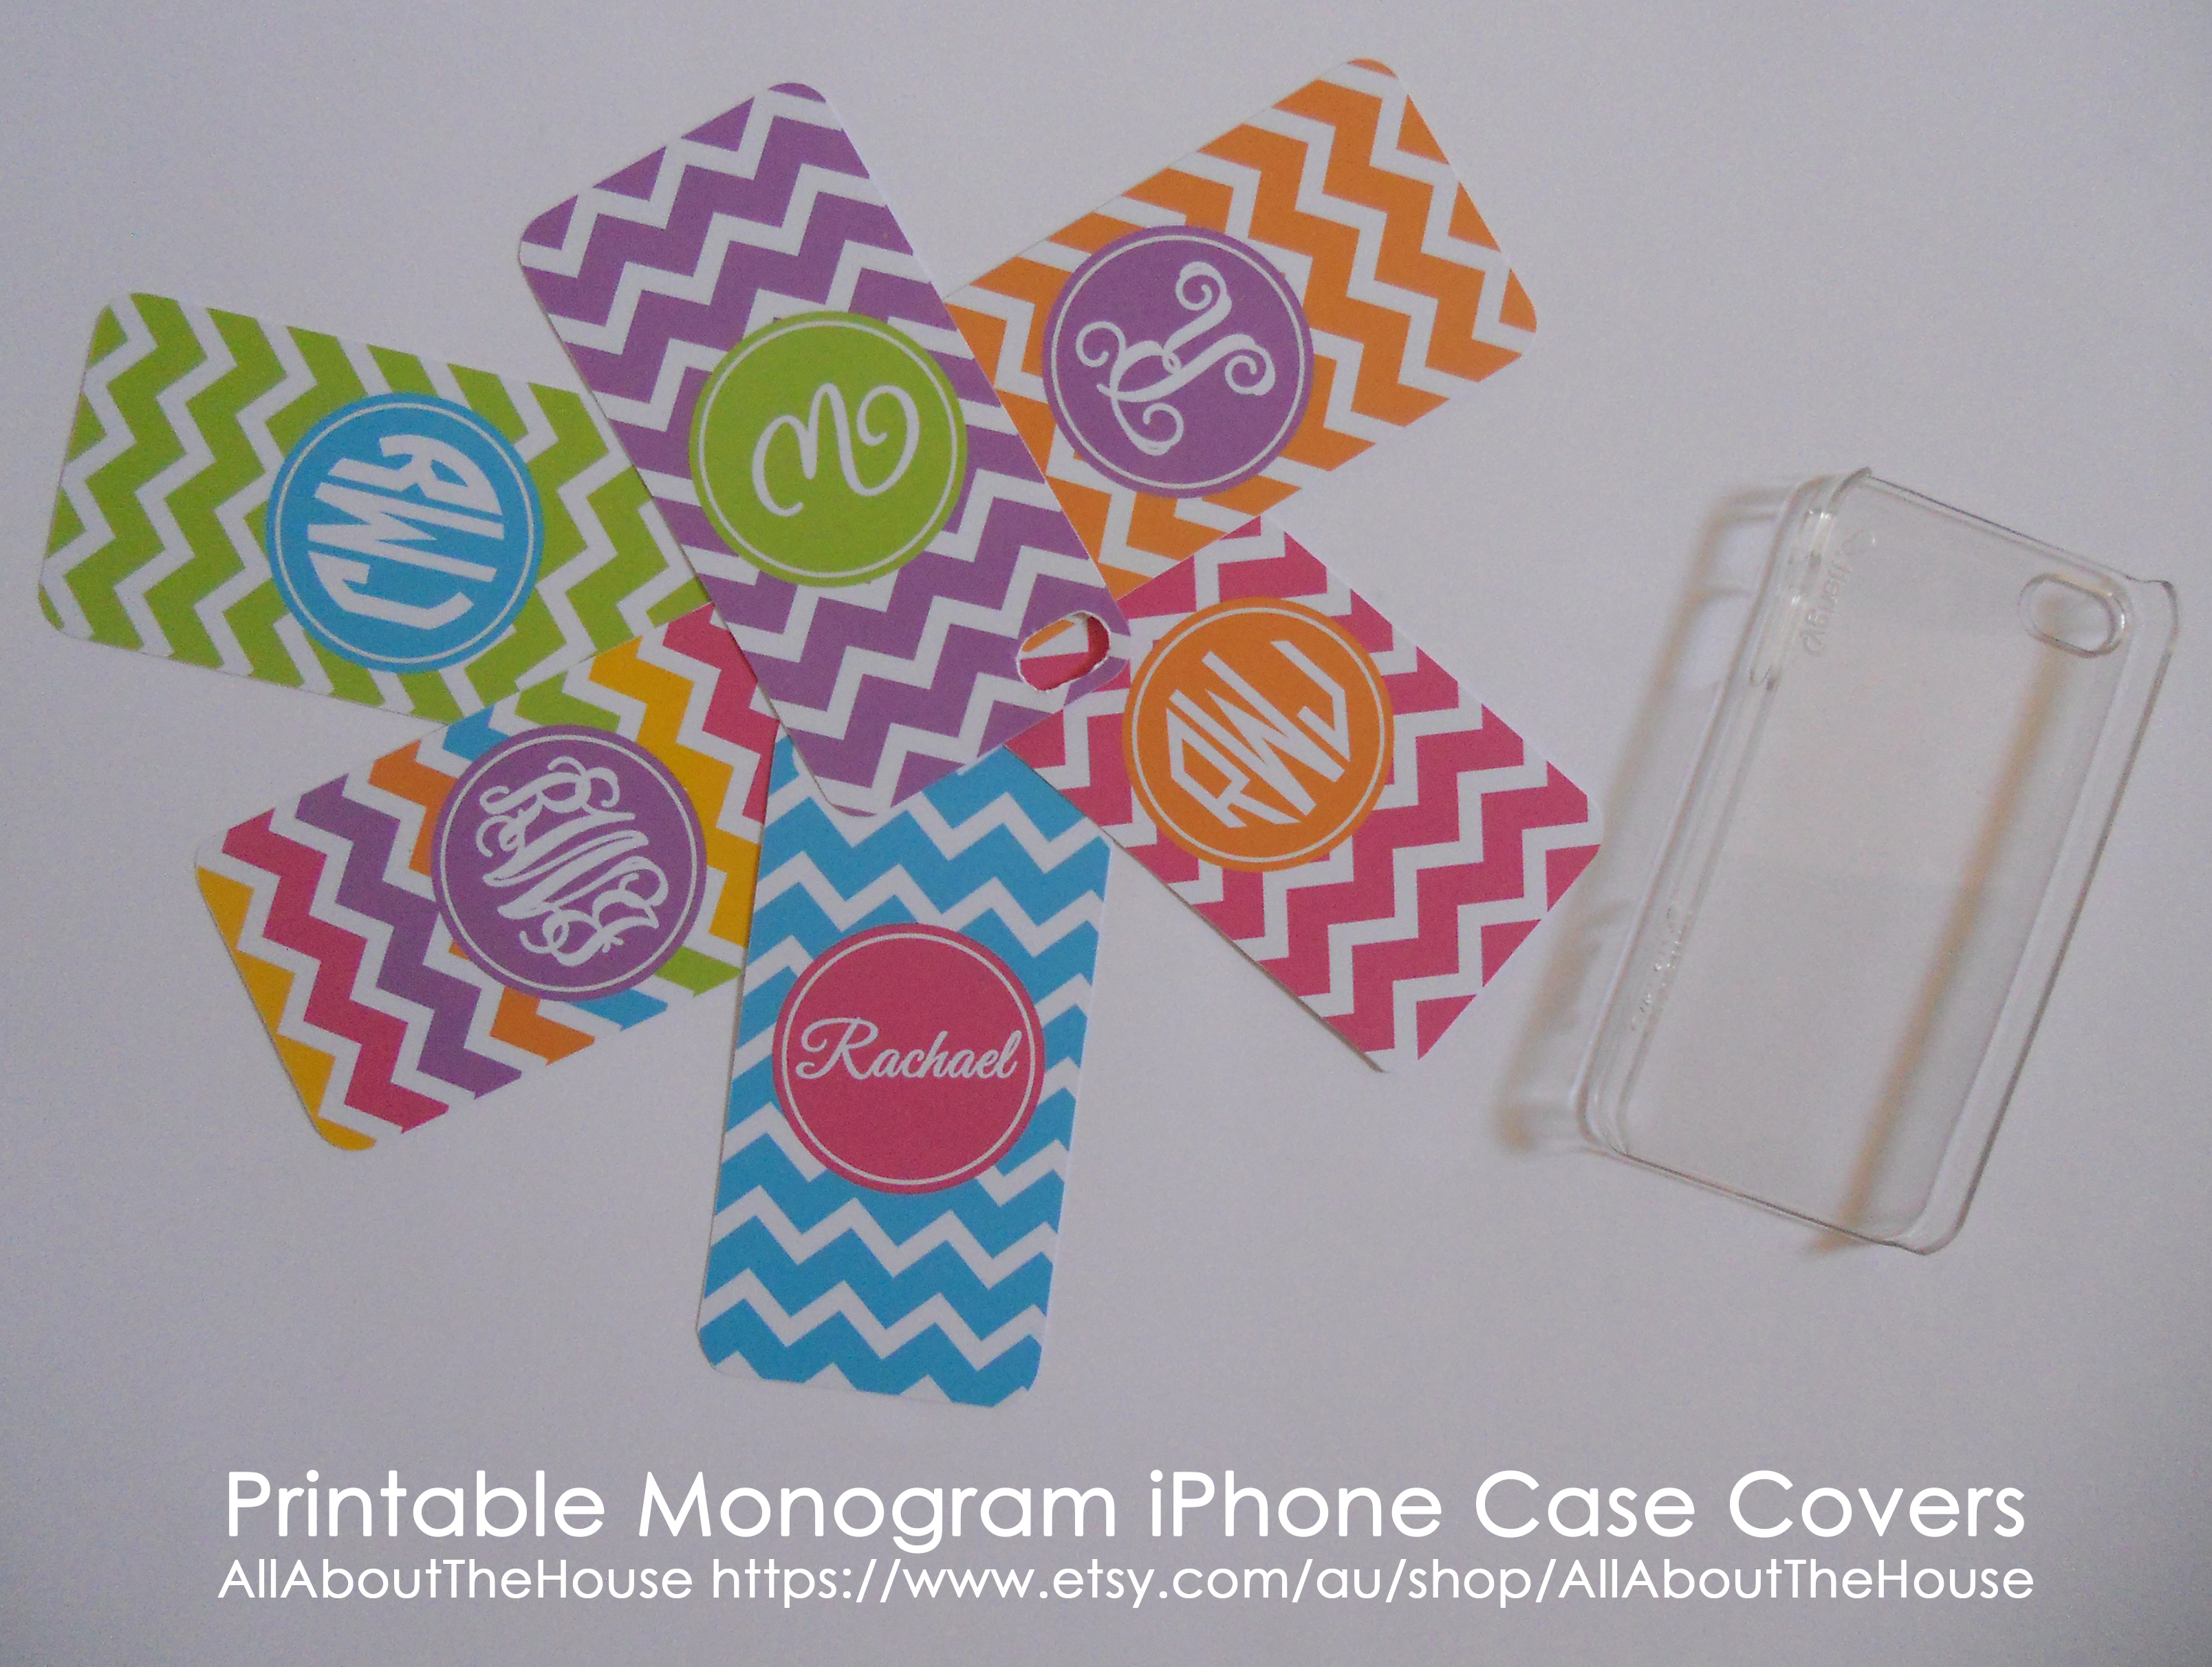 iPhone case covers -  allaboutthehouse